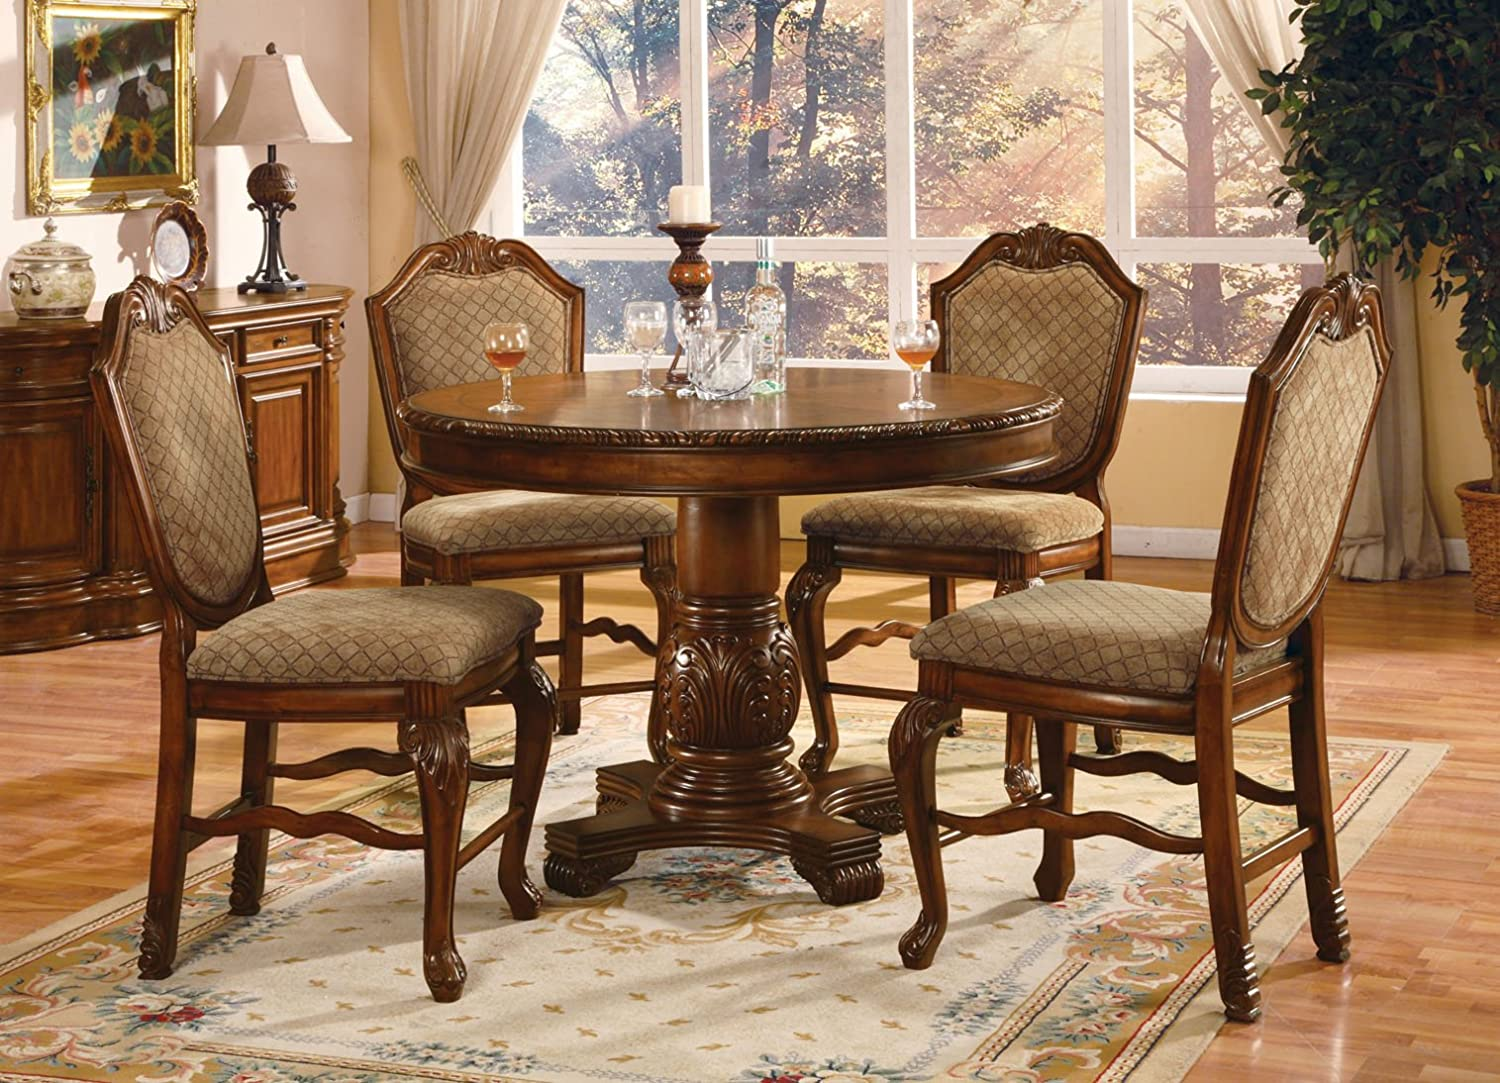 Amazon.com   ACME 040482 SET Chateau De Ville 5 Piece Counter Height Dining  Set, Table/4 Chairs, Cherry Finish   Table U0026 Chair Sets